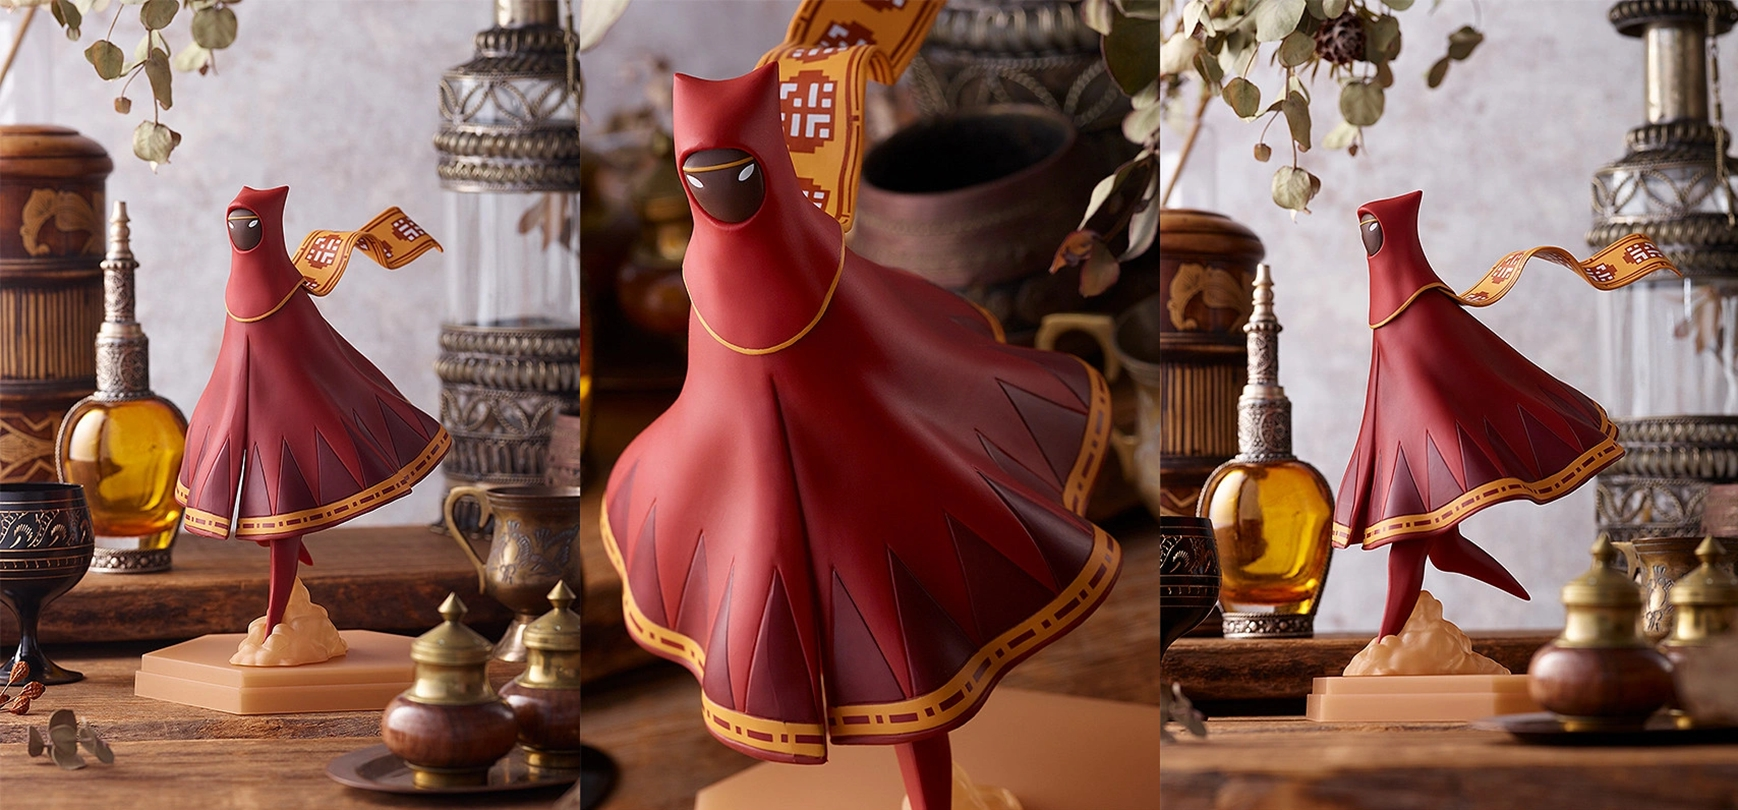 Bring The Journey Home With Good Smile Company's New Pop Up Parade Figure Of The Traveler